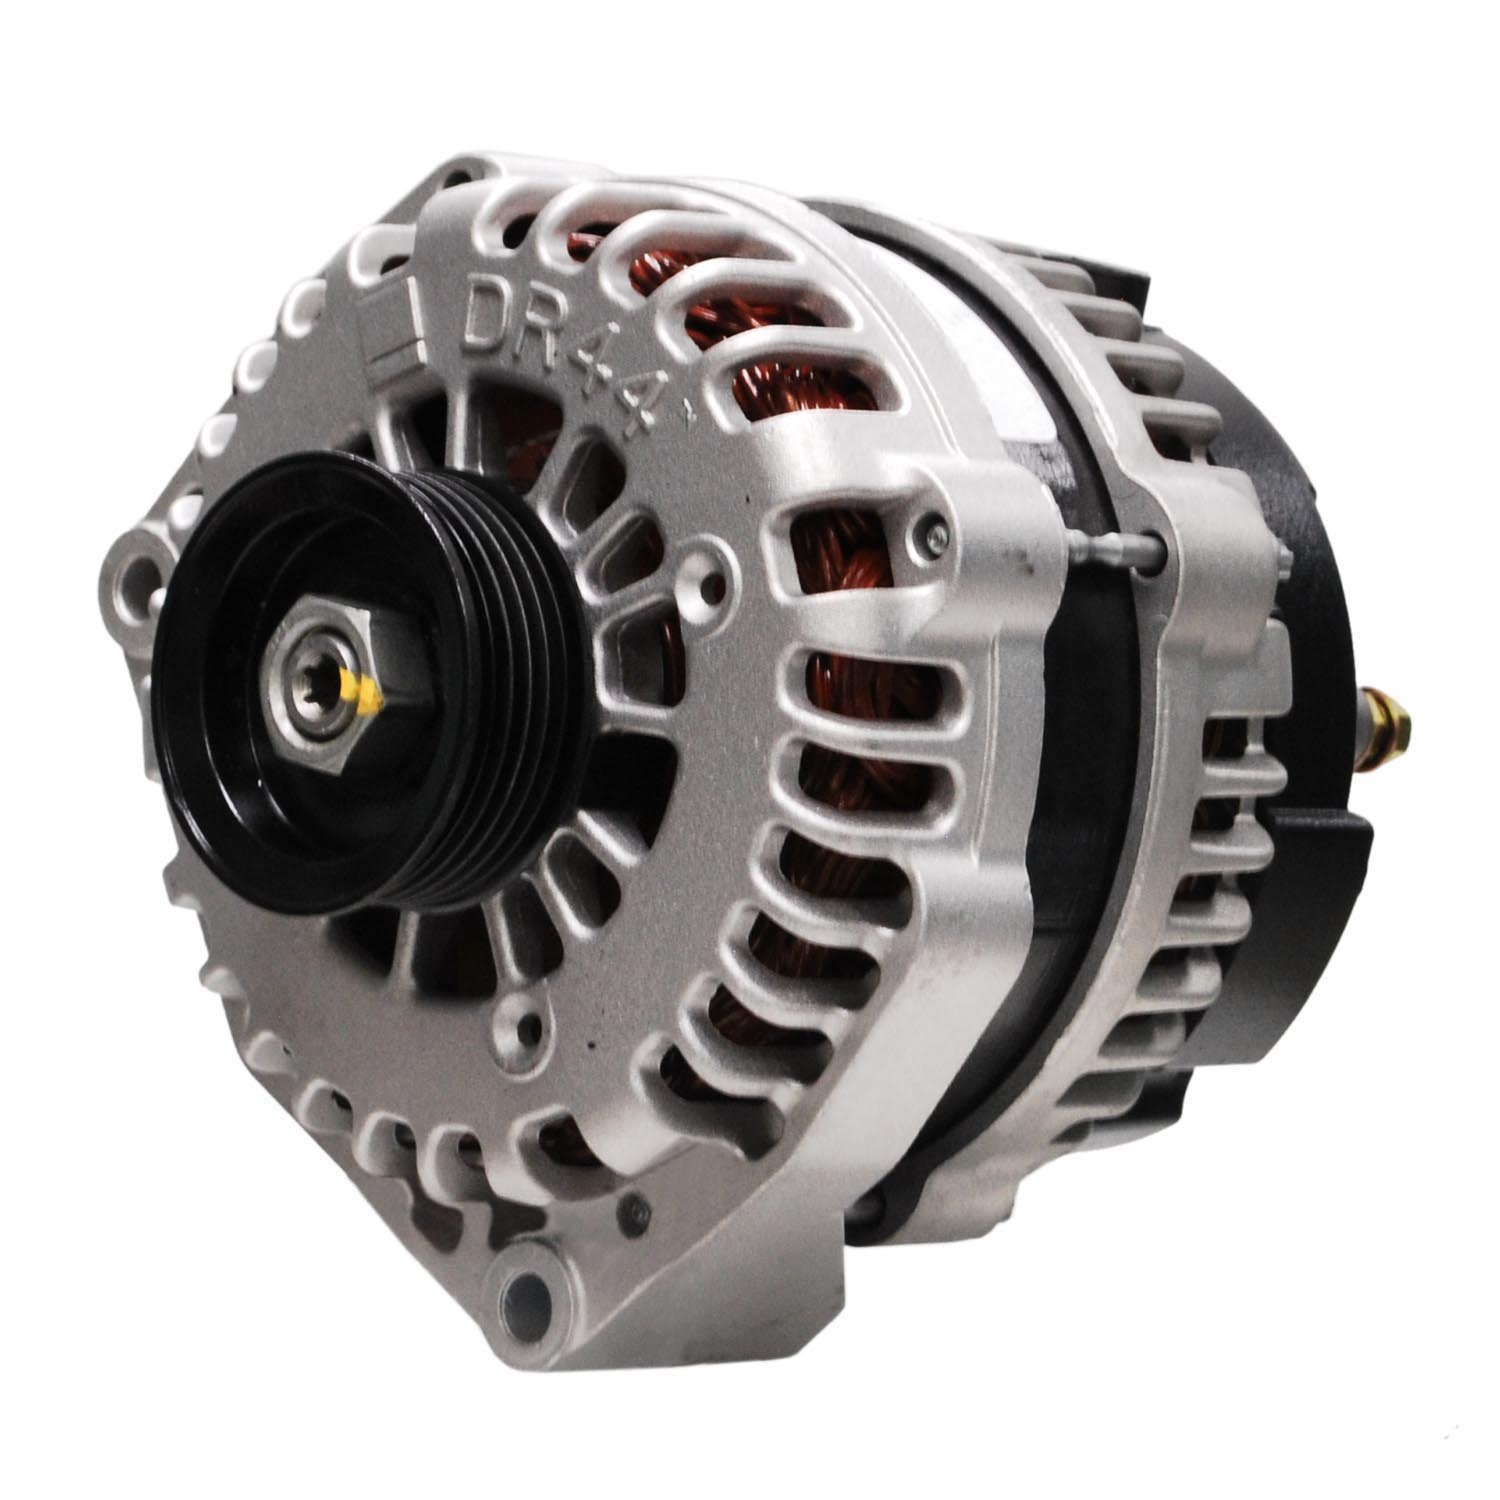 ACDelco 334-2742A Professional Alternator, Remanufactured by ACDelco